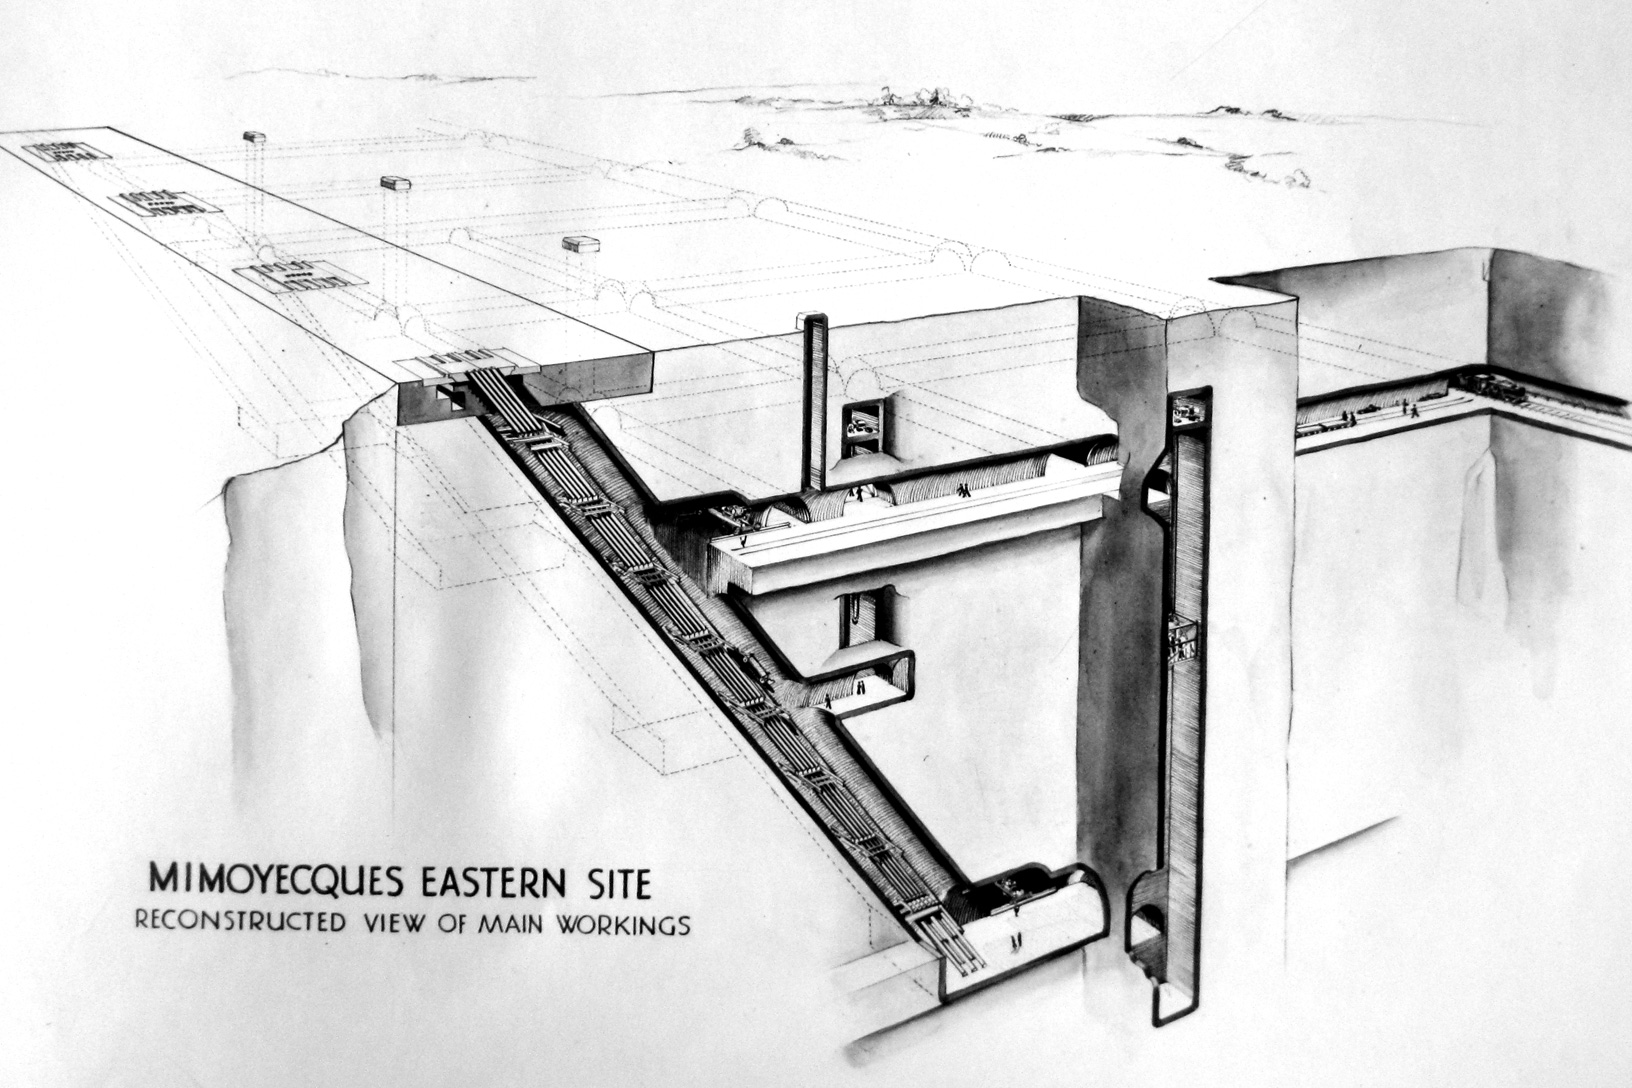 Fortress_of_Mimoyecques on Underground Concrete Home Plans